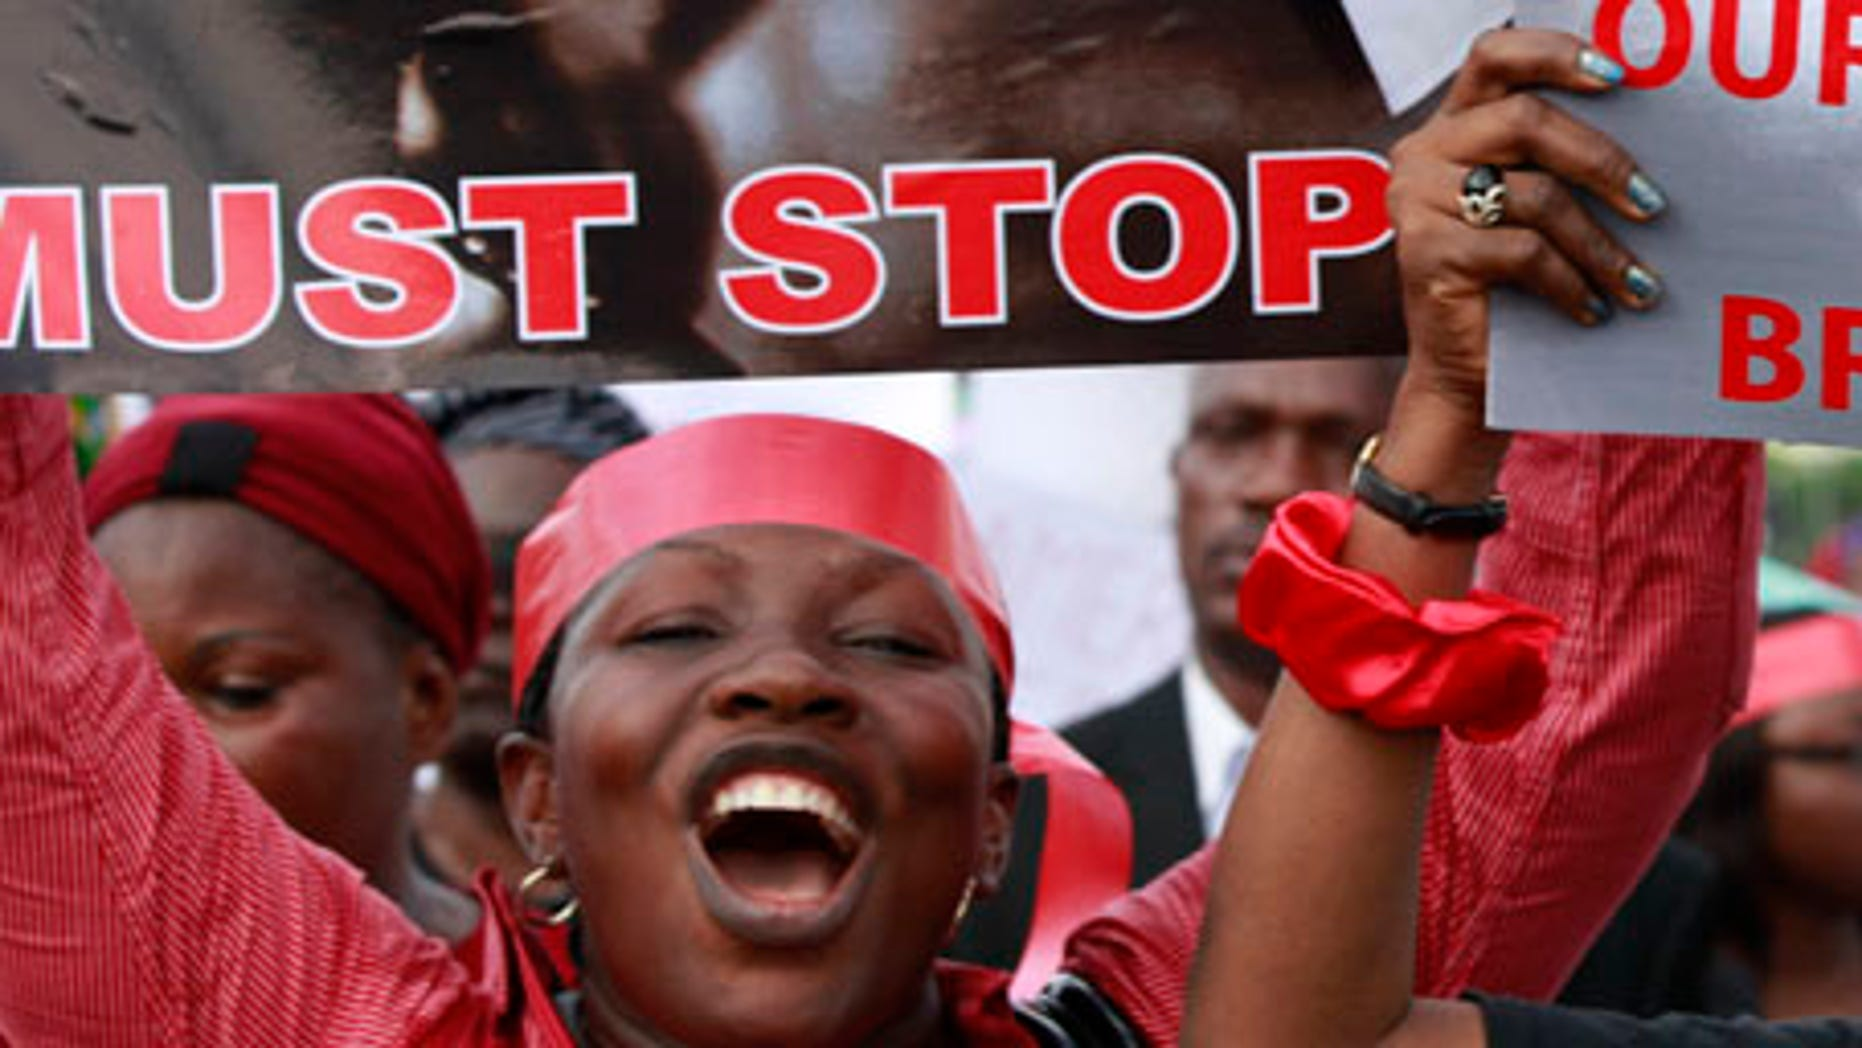 """Women attend a demonstration calling on the government to rescue kidnapped school girls of a government secondary school Chibok, in Lagos, Nigeria, Monday May 5, 2014. Their plight  and the failure of the Nigerian military to find them  has drawn international attention to an escalating Islamic extremist insurrection that has killed more than 1,500 so far this year. Boko Haram, the name means """"Western education is sinful,"""" has claimed responsibility for the mass kidnapping and threatened to sell the girls. The claim was made in a video seen Monday. The British and U.S. governments have expressed concern over the fate of the missing students, and protests have erupted in major Nigerian cities and in New York. (AP Photo/Sunday Alamba)"""